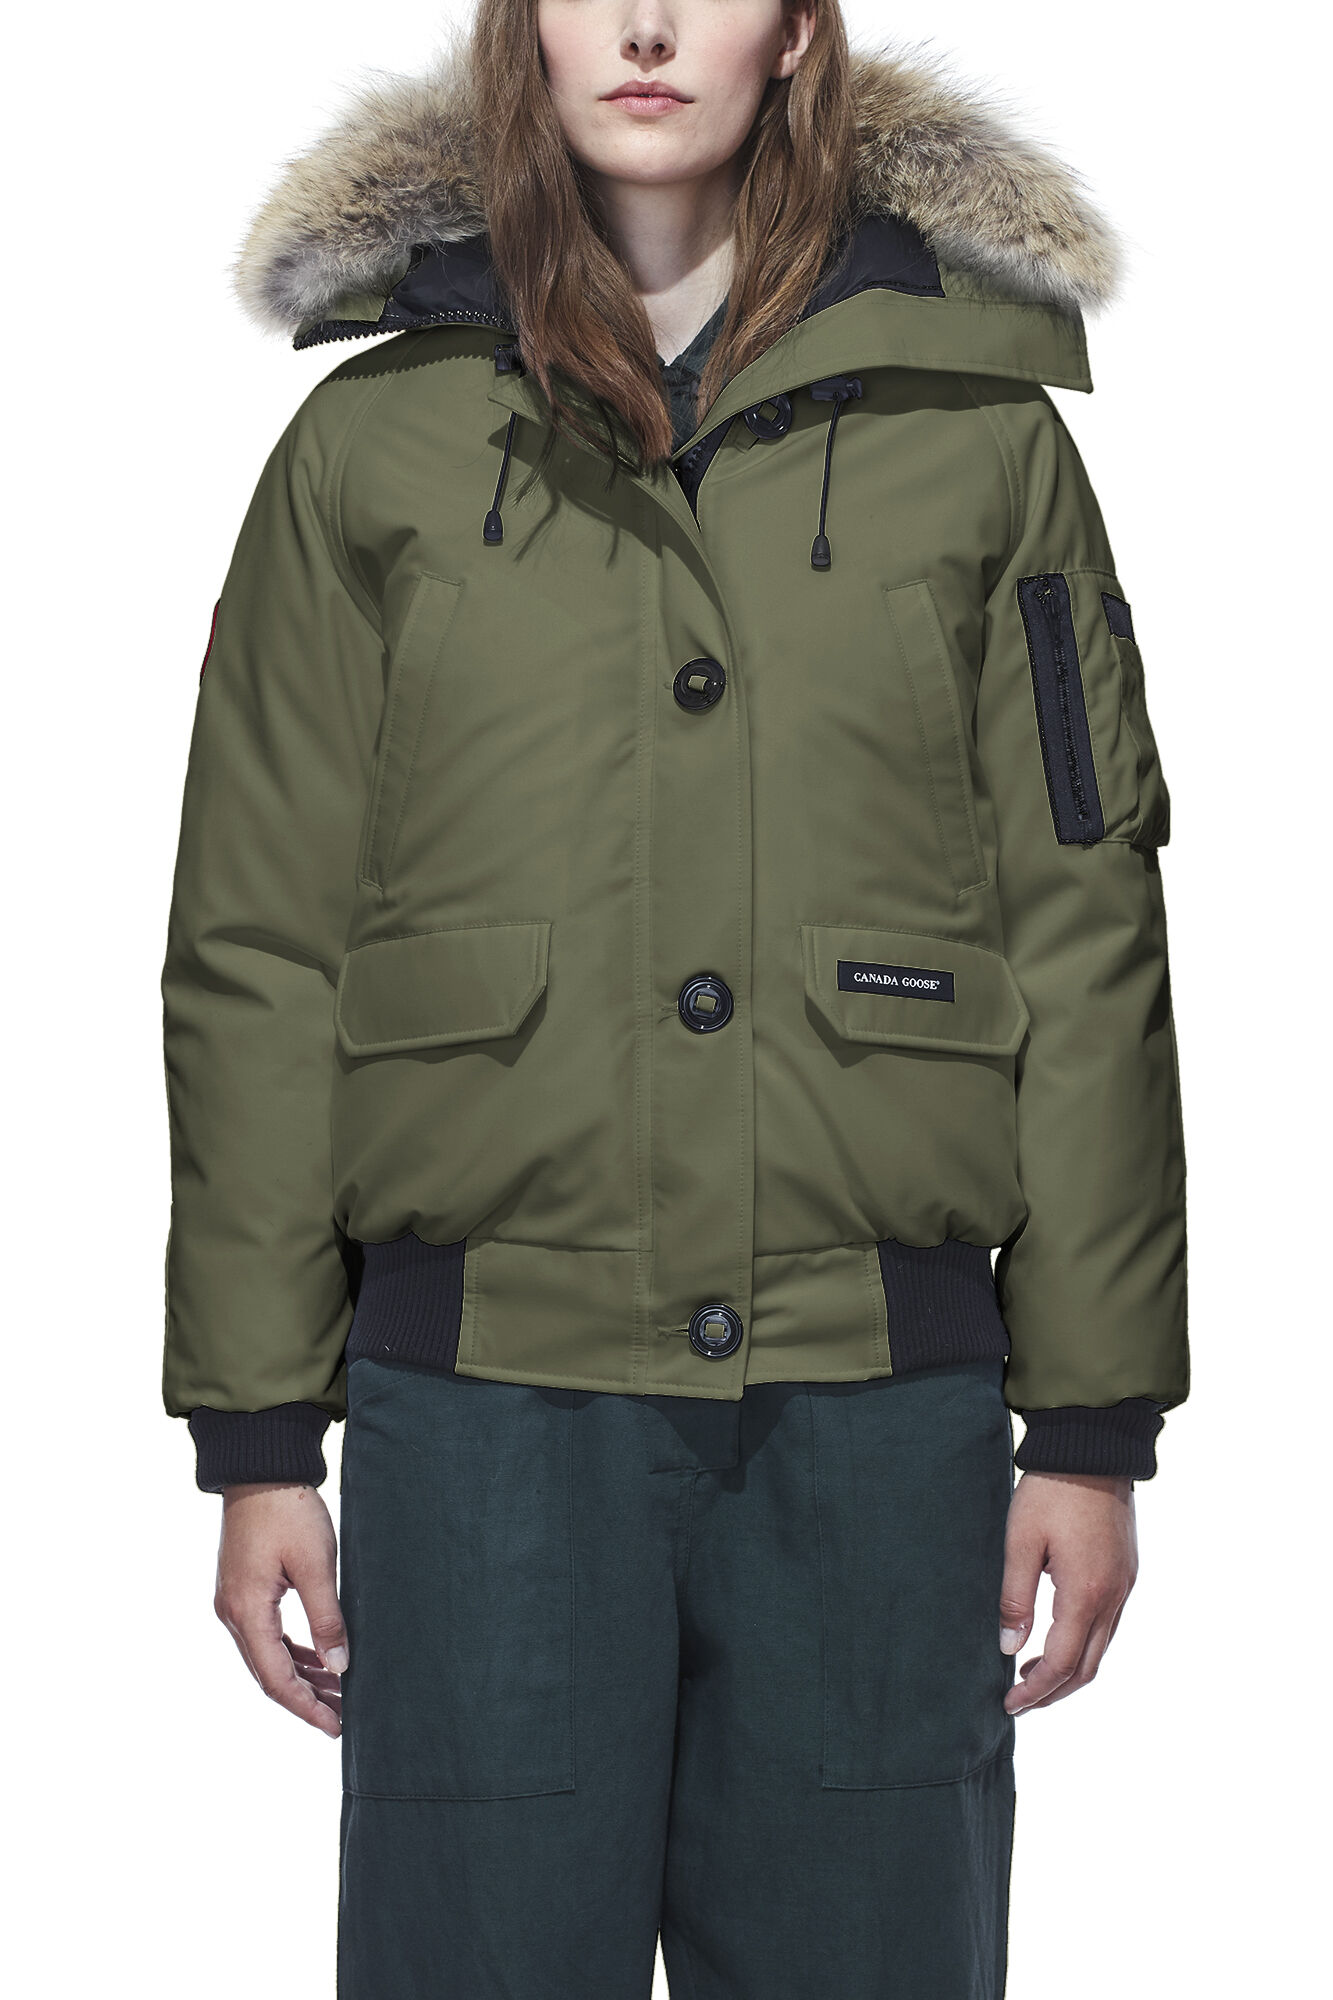 Women's Arctic Program Chilliwack Bomber | Canada Goose®